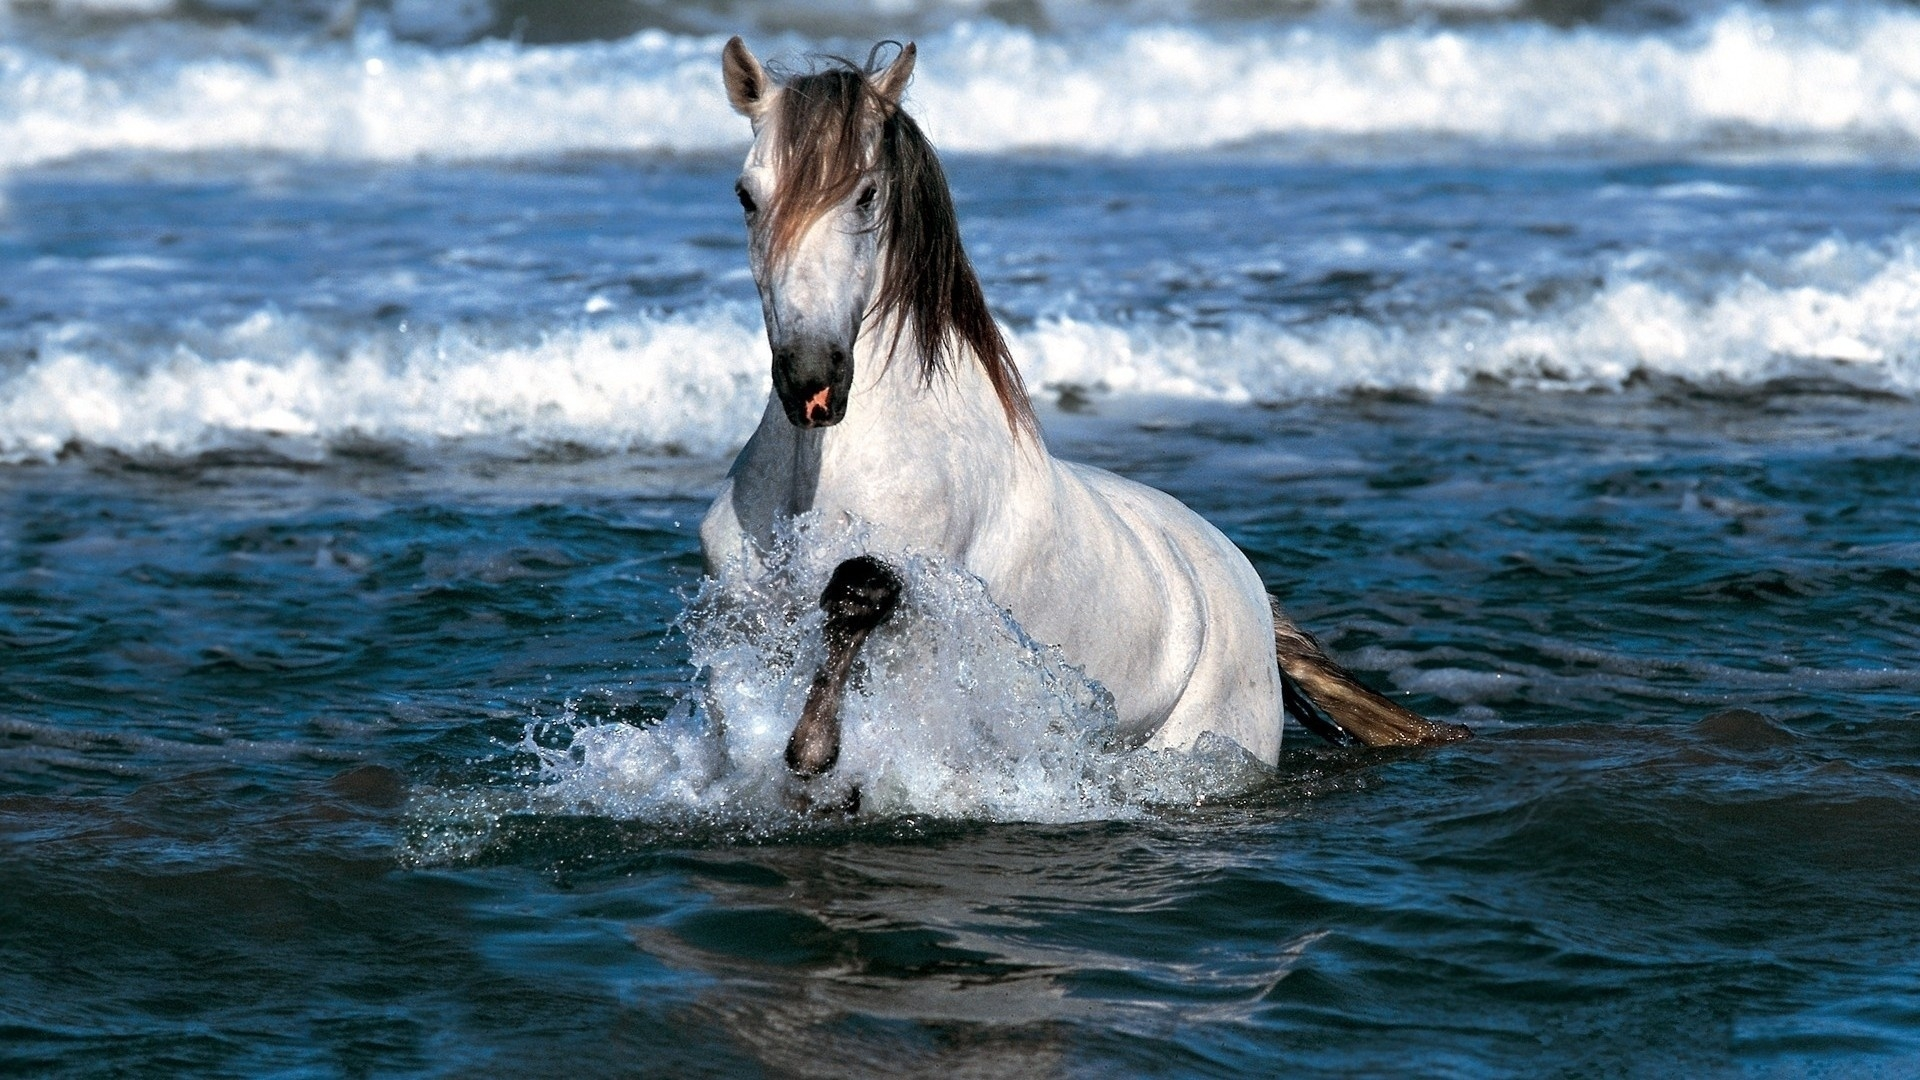 32483 download wallpaper Horses, Animals screensavers and pictures for free